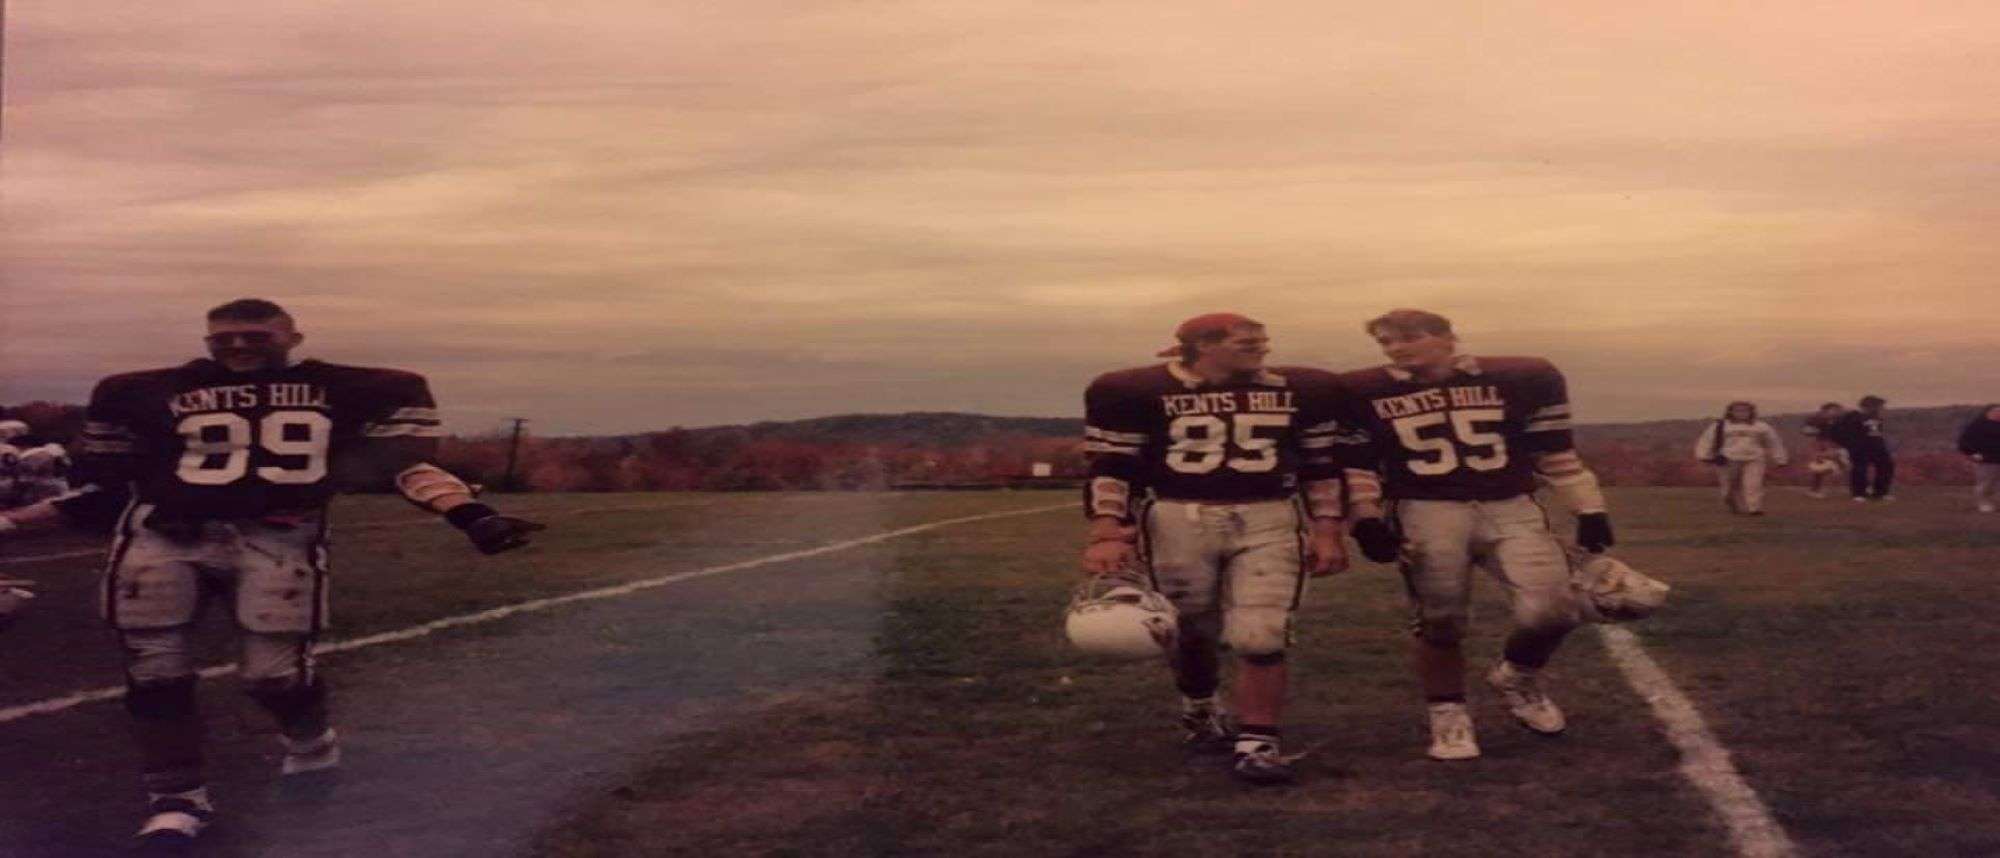 Howe brothers in football uniforms